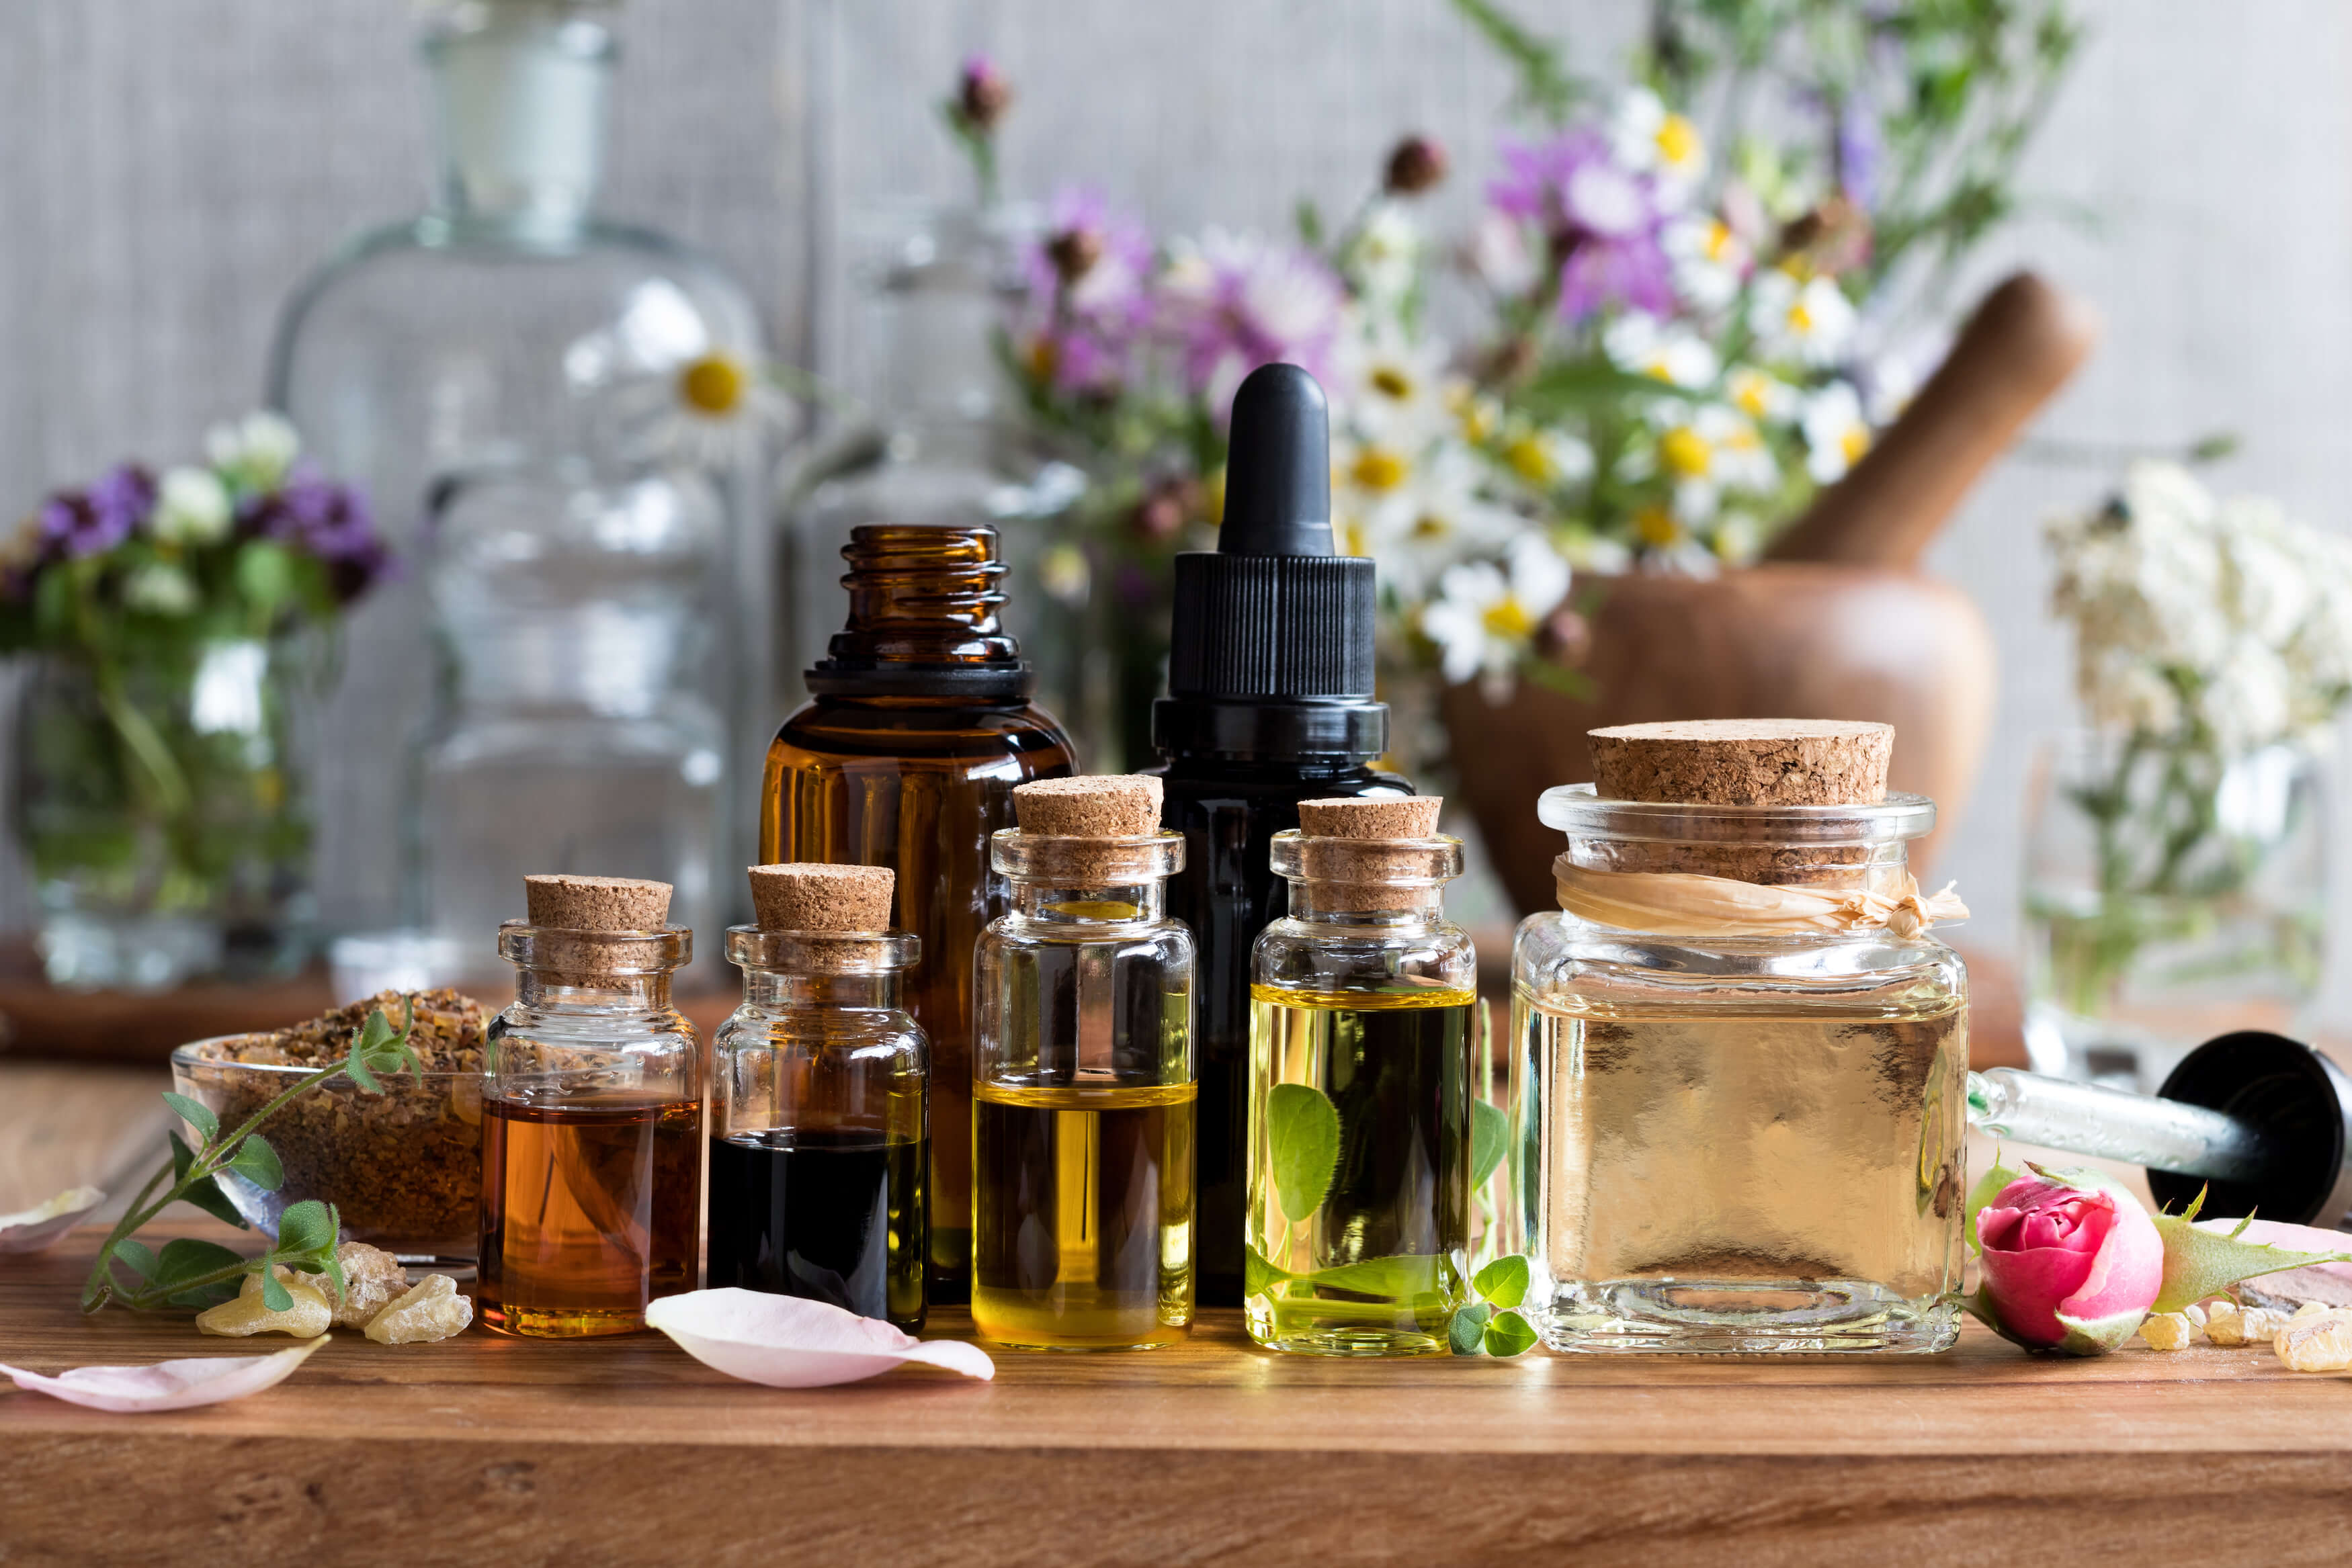 Essential Oils - Essential oils are a powerful and versatile part of a natural medicine cabinet, as they contain potent medicinal and cosmetic properties. They work to support the body's own healing system.Essential oils have a very small molecular size, which means that their healing properties are easily absorbed by the skin. Each oil has unique properties supporting a well balanced body.